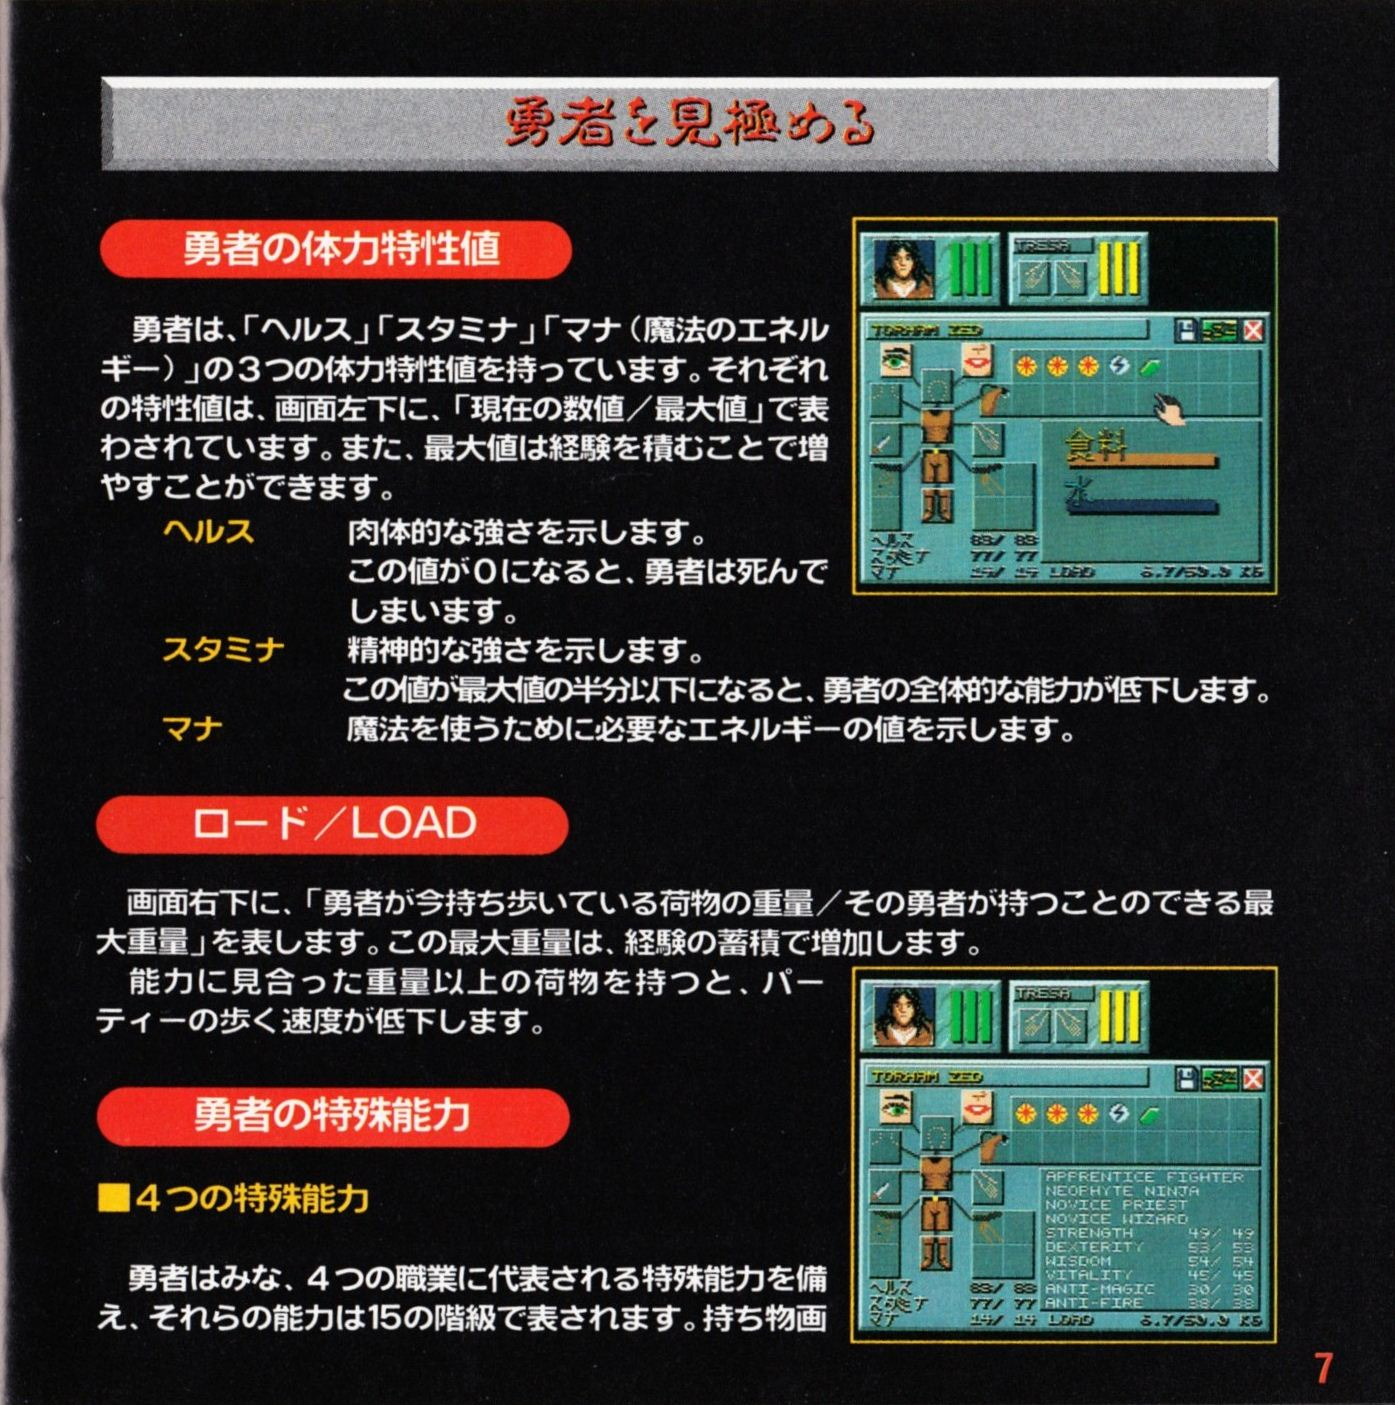 Game - Dungeon Master II - JP - Mega CD - Booklet - Page 009 - Scan